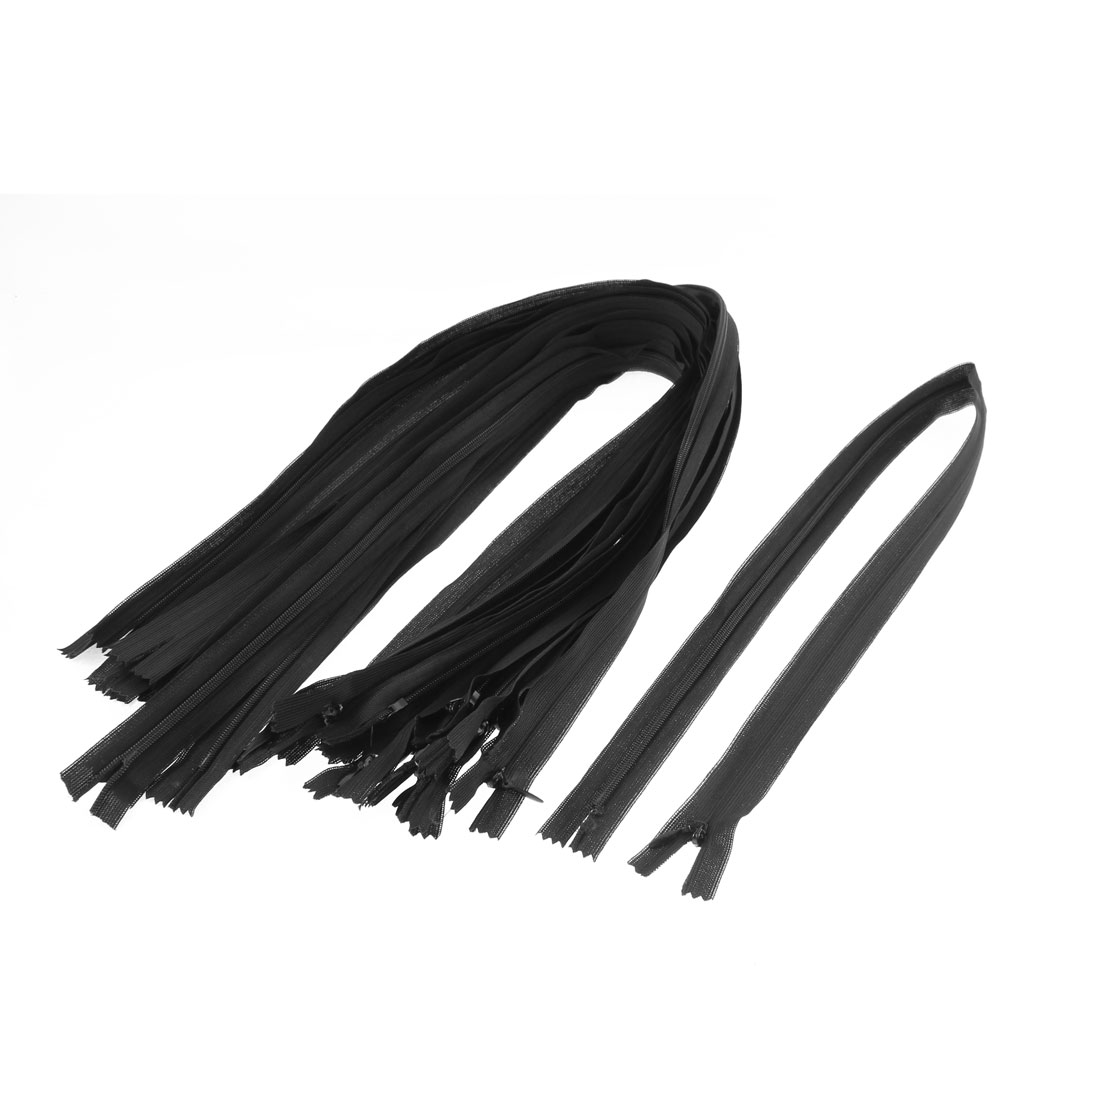 "Black Nylon Zippers Tailor Sewing Tools 24"" Long 20 Pcs"